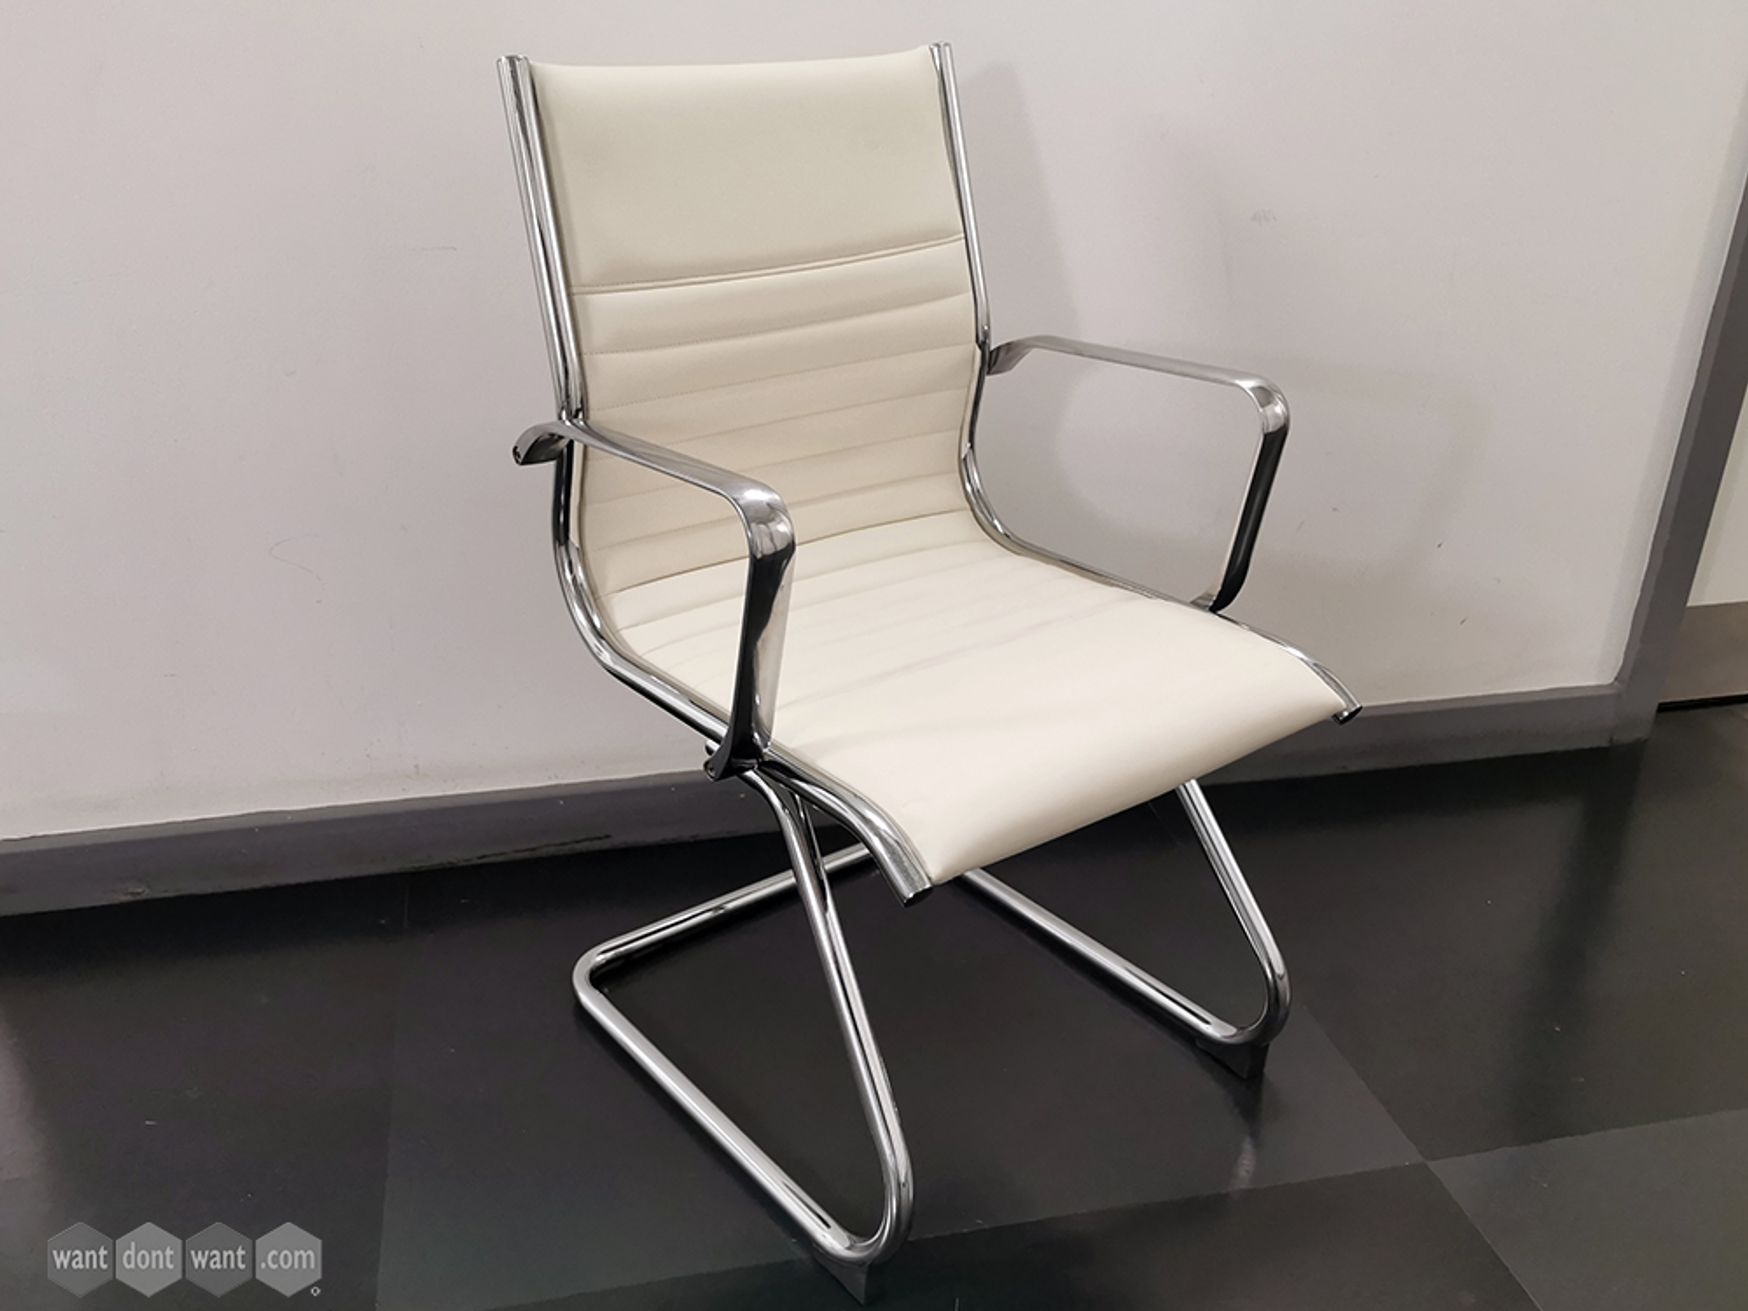 Used Meeting/Visitor Chairs in Cream Bonded Leather with Cantilever Frame